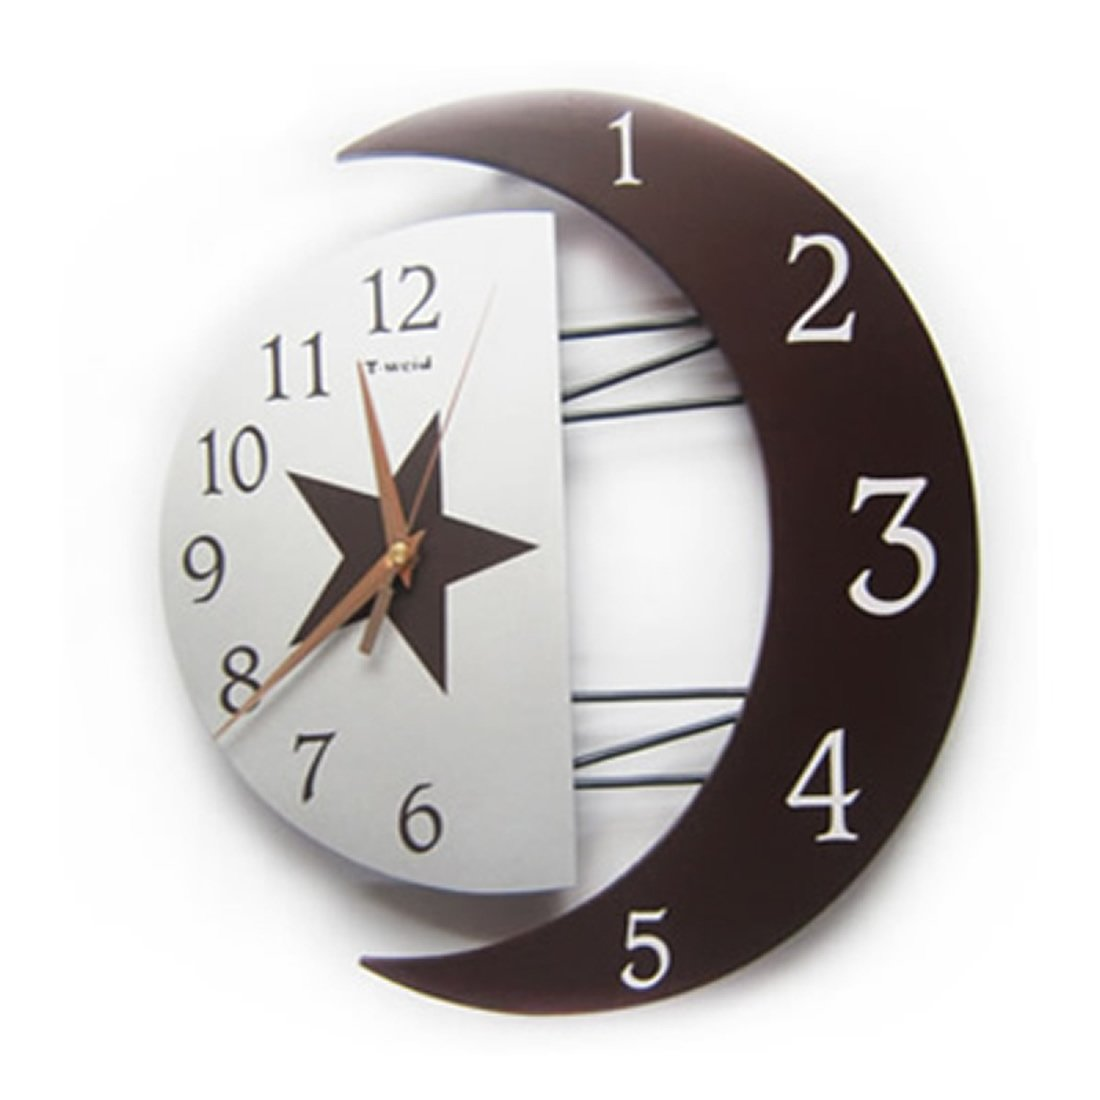 Wall Clock Design Photo : Squidoo page not found